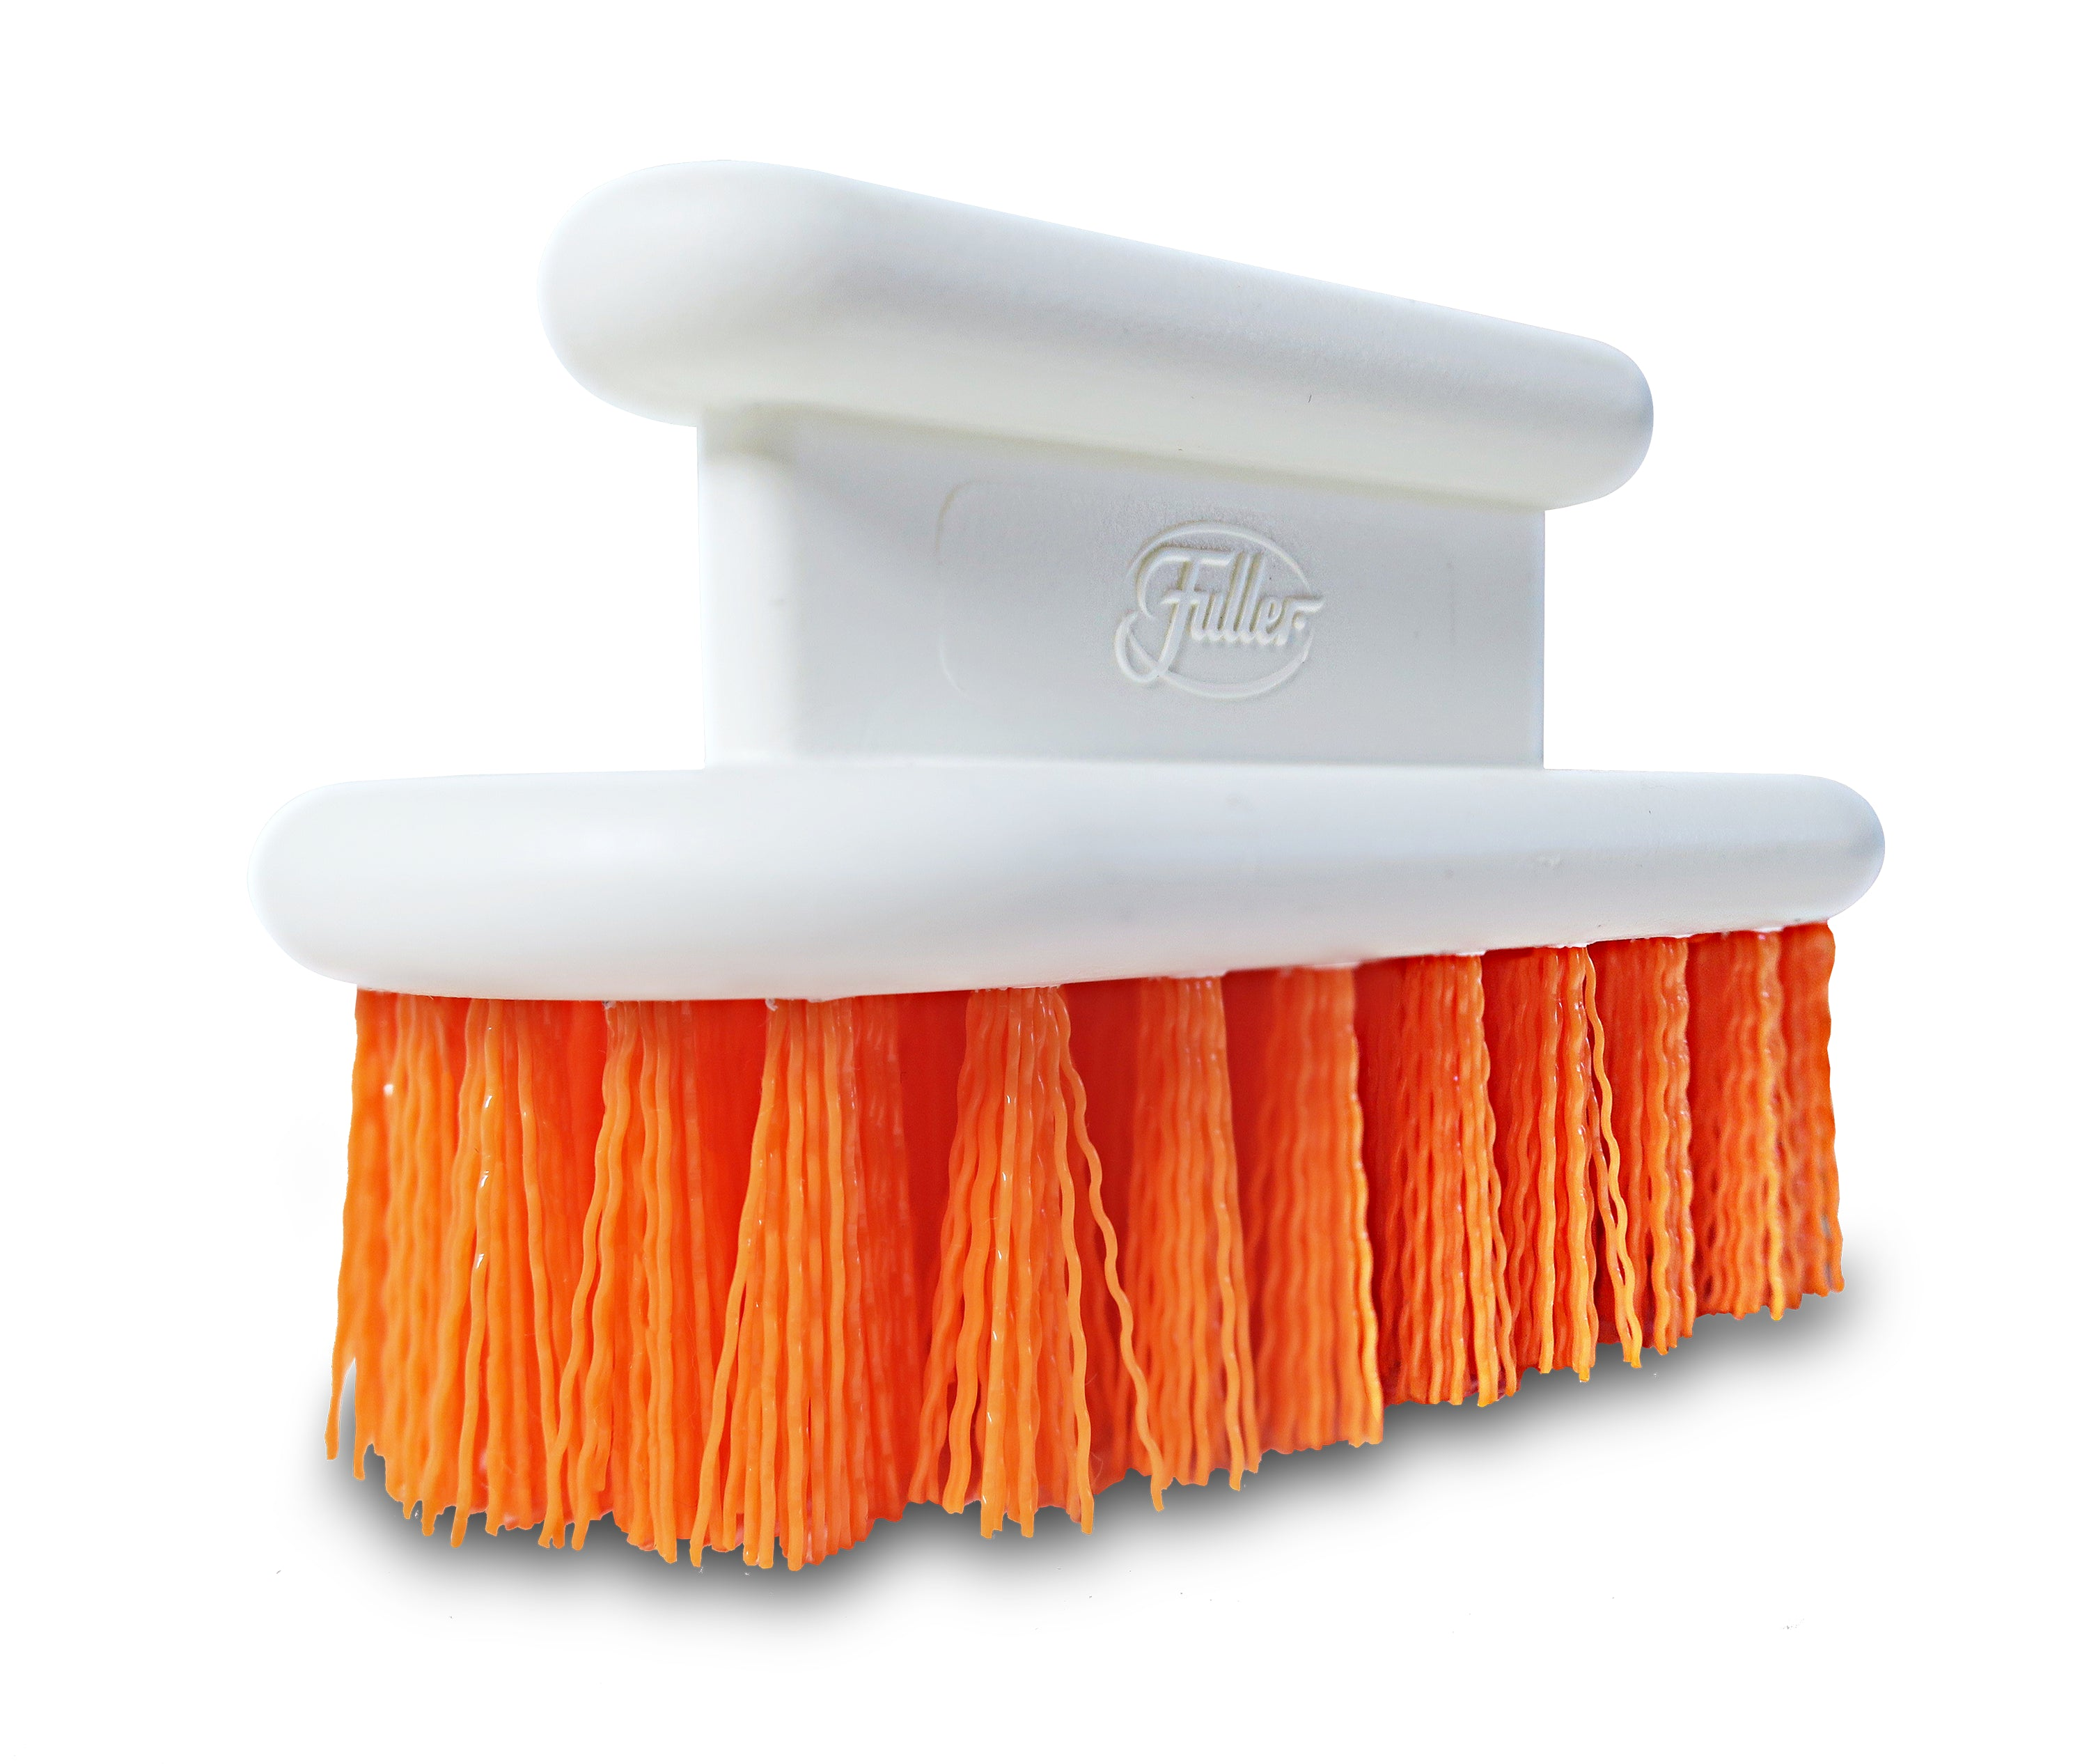 Orange Scrub Brush - All Purpose Scrubber For Tough Stain Removal